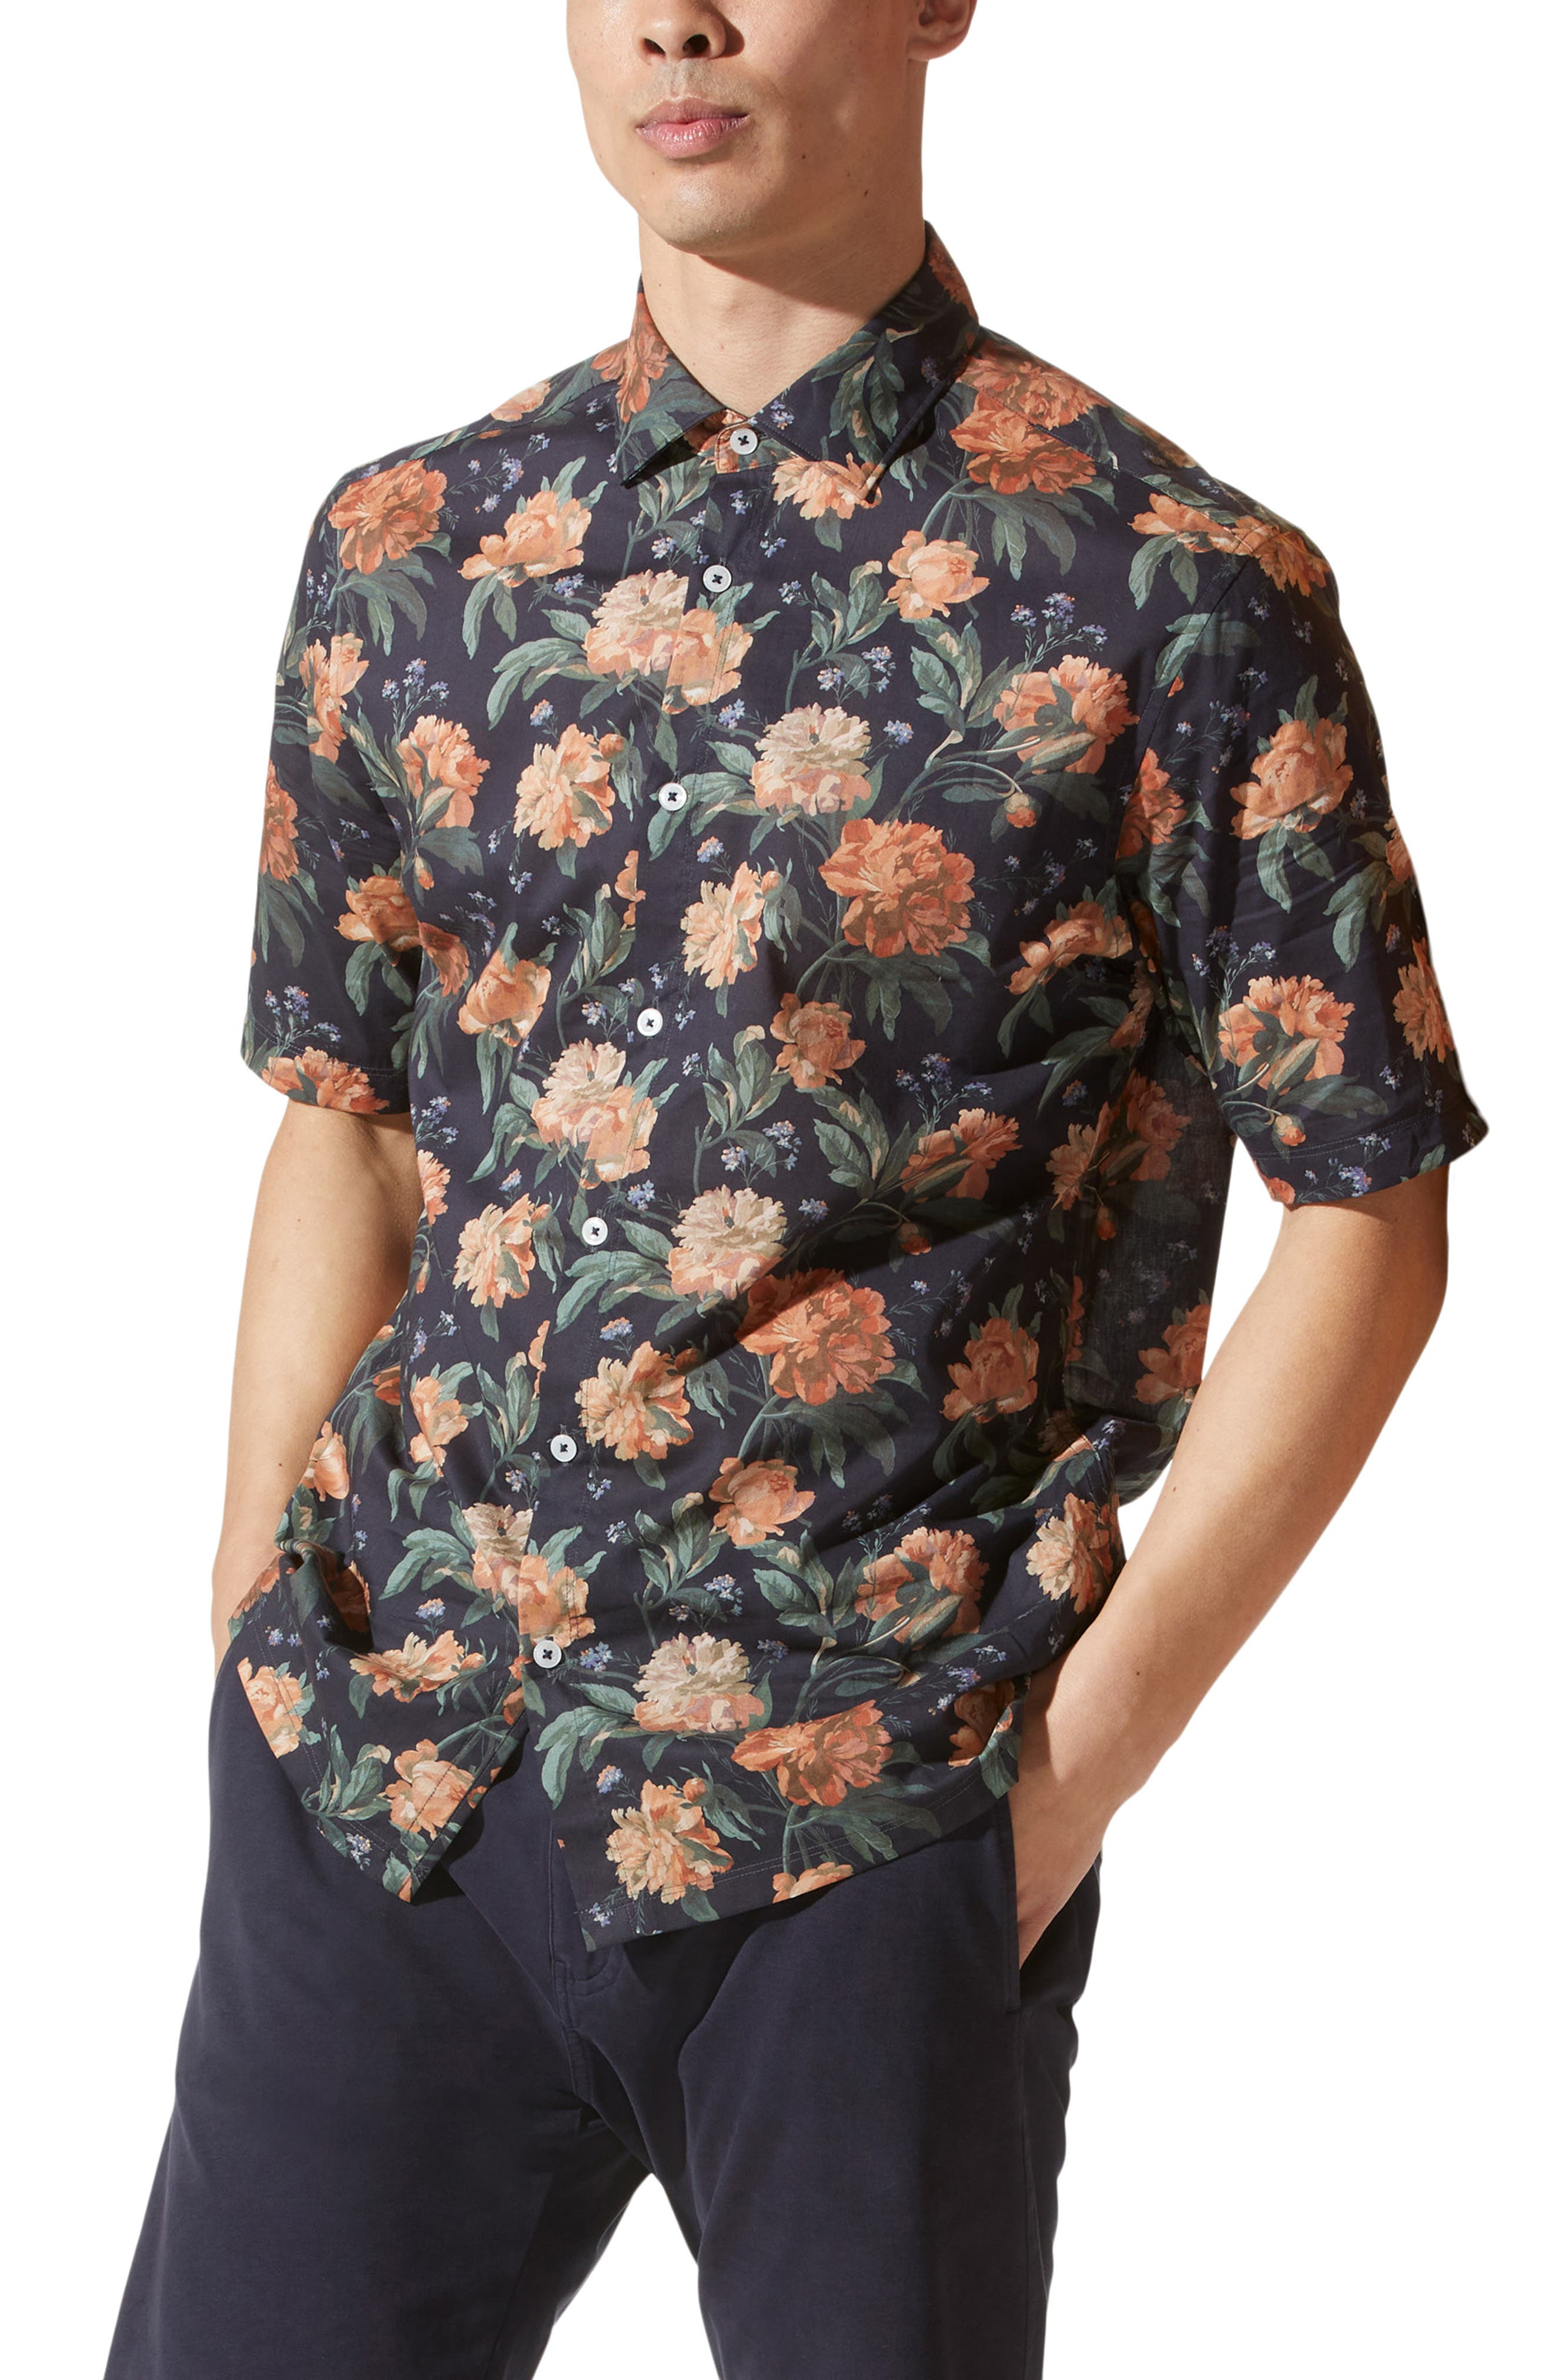 On-Point Print Short Sleeve Button-Up Shirt